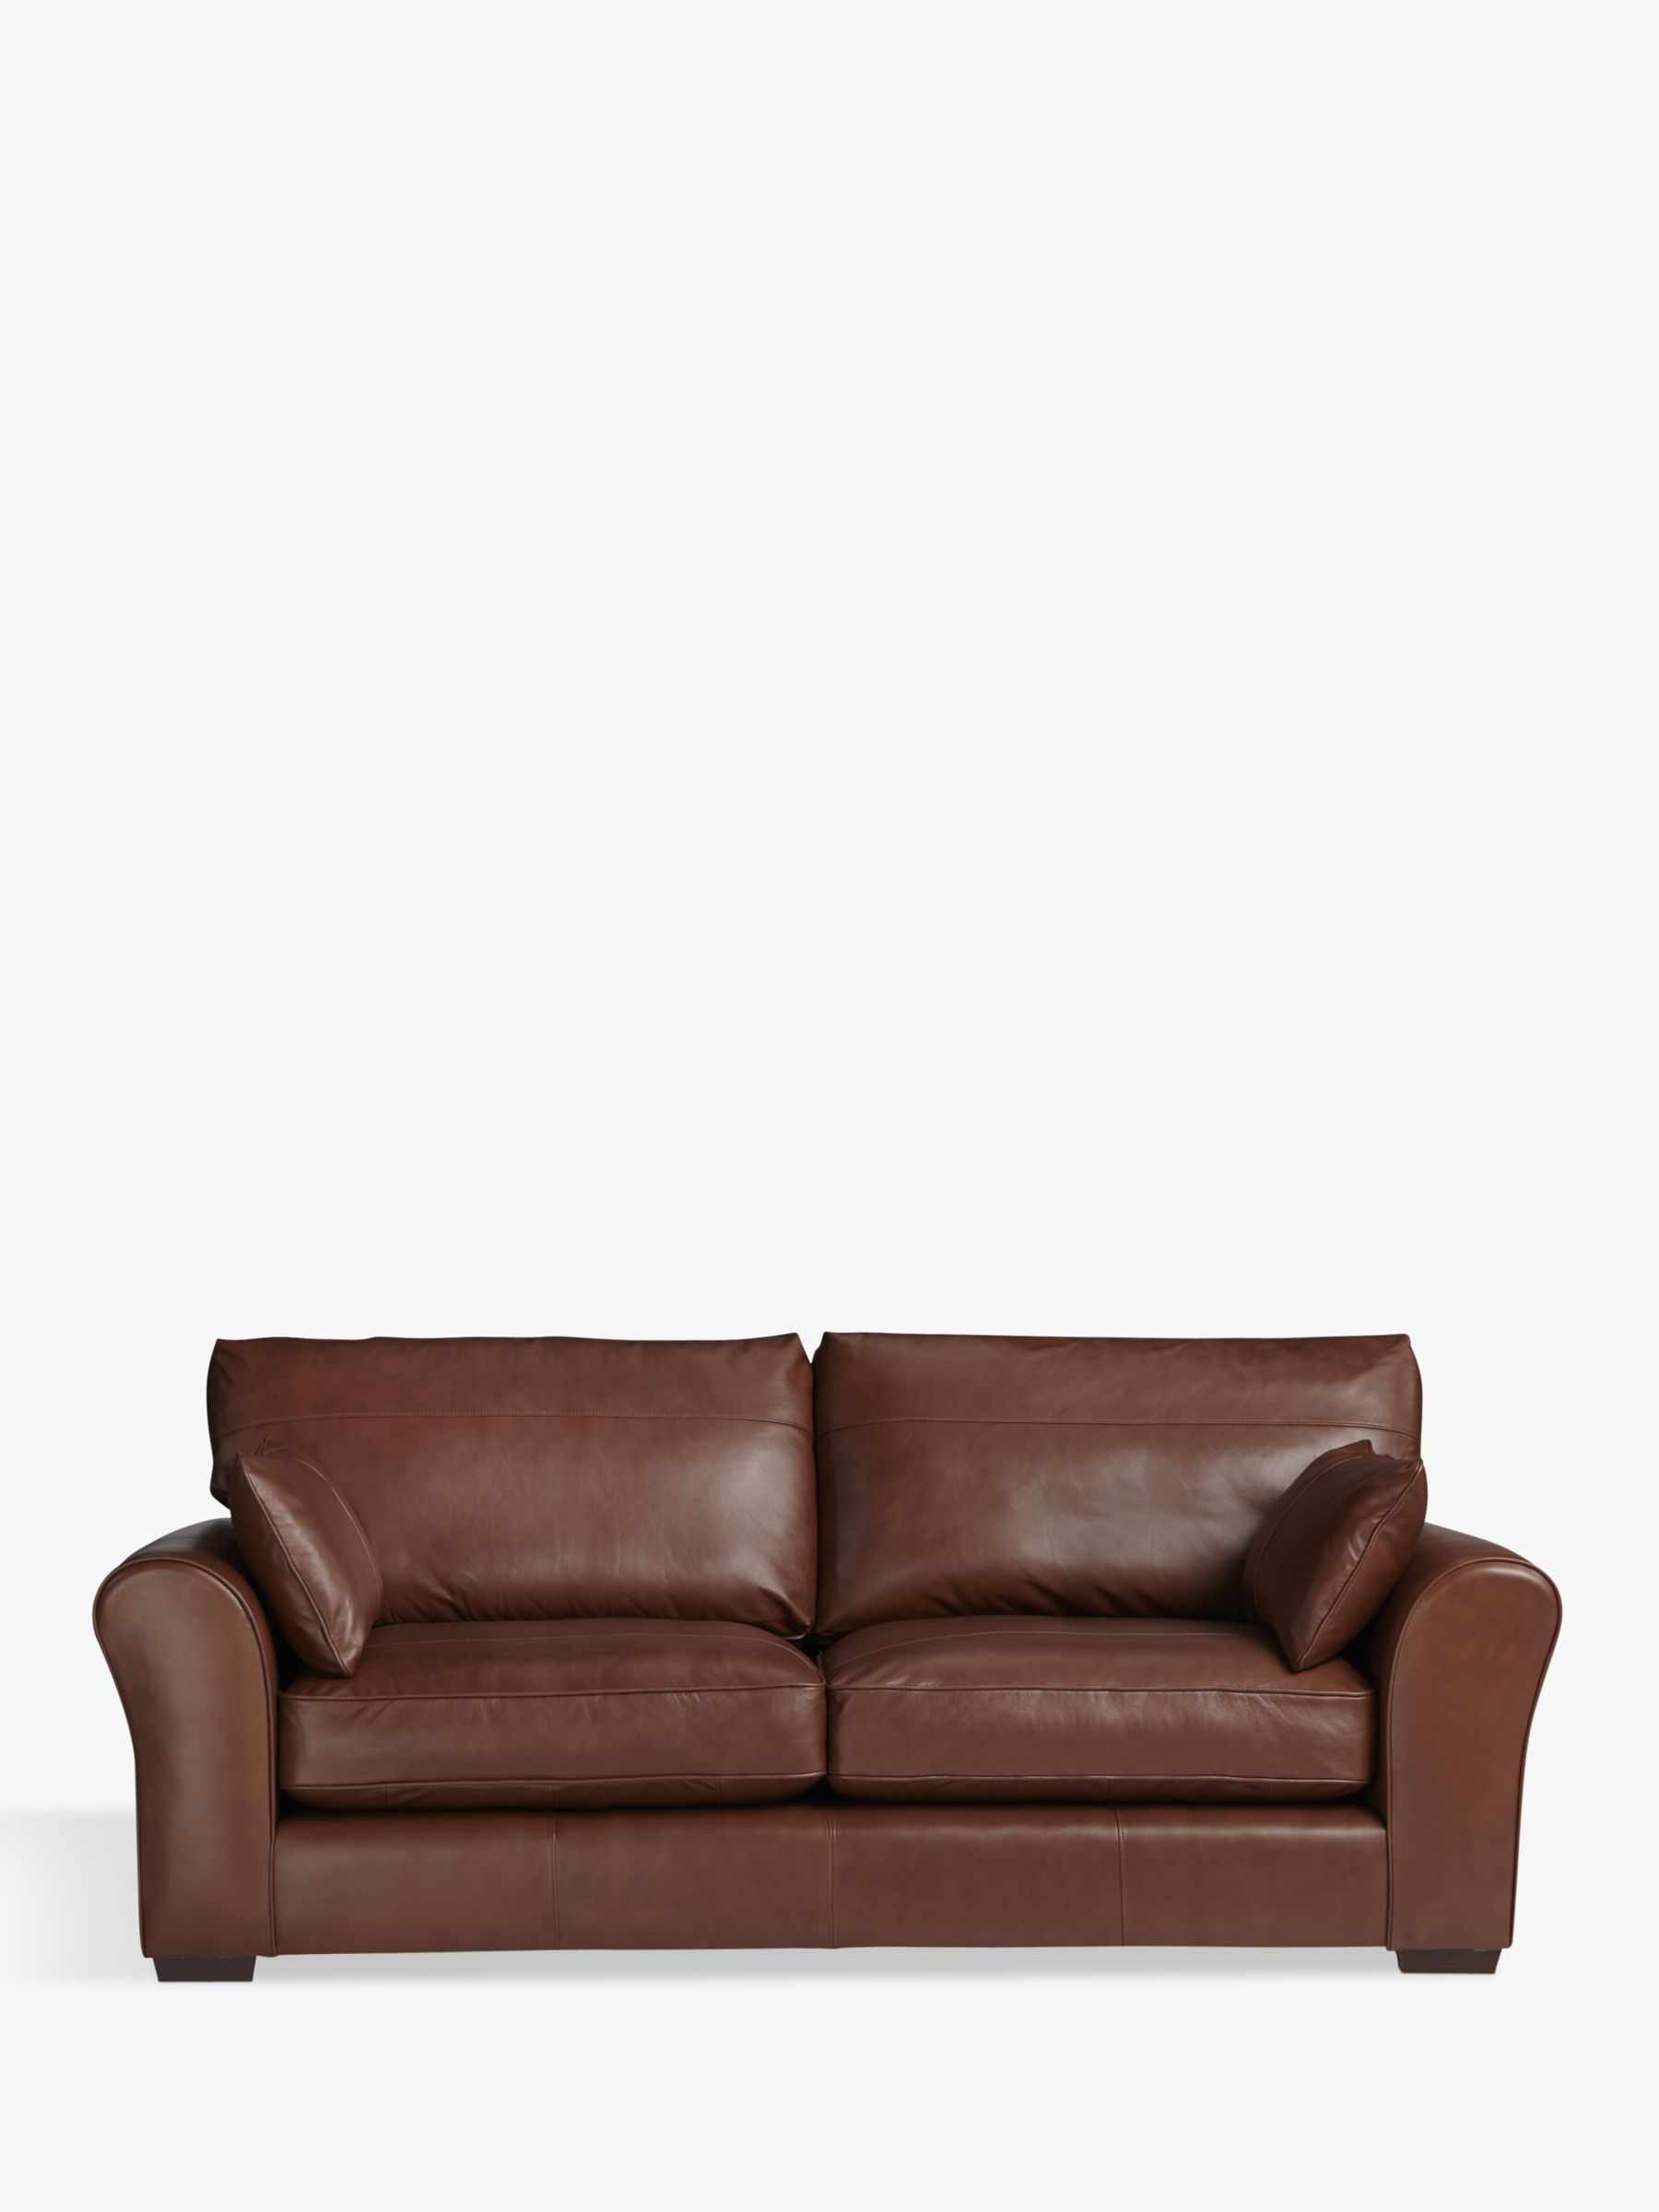 sacha large leather sofa bed madras chocolate ottoman melbourne john lewis